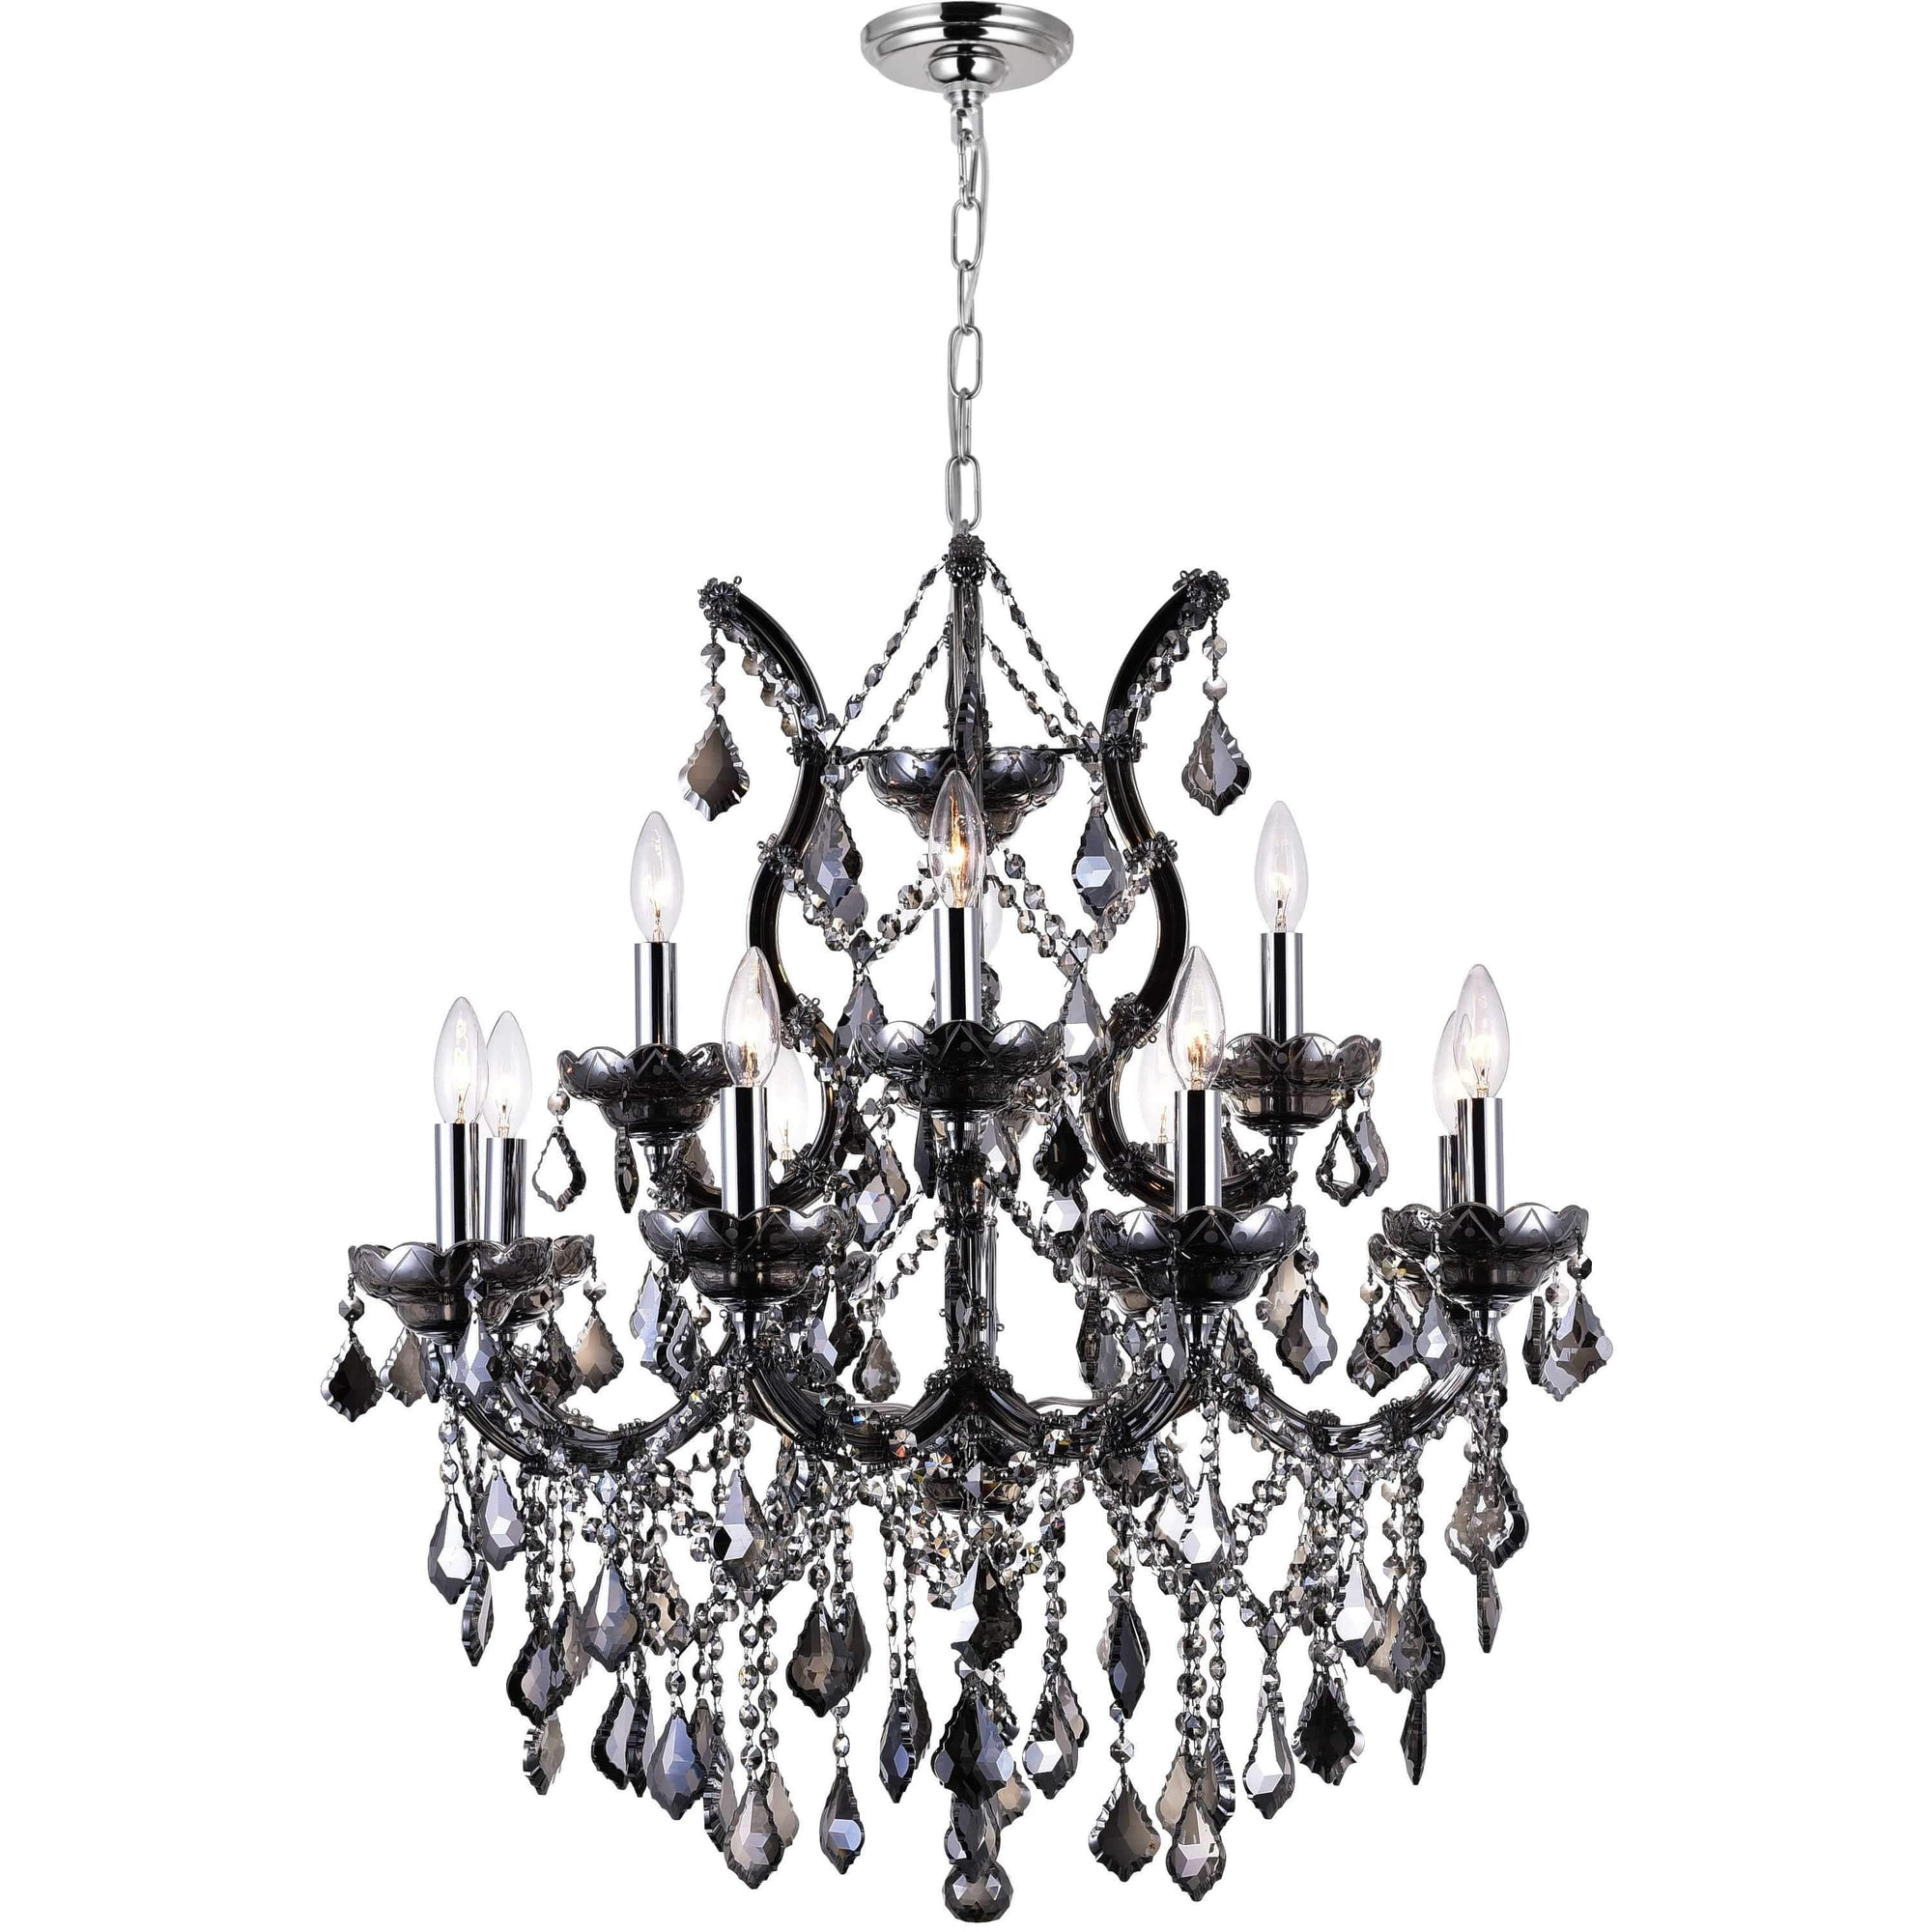 CWI Lighting Chandeliers Chrome / K9 Smoke Maria Theresa 13 Light Up Chandelier with Chrome finish by CWI Lighting 8311P30C-13 (Smoke)